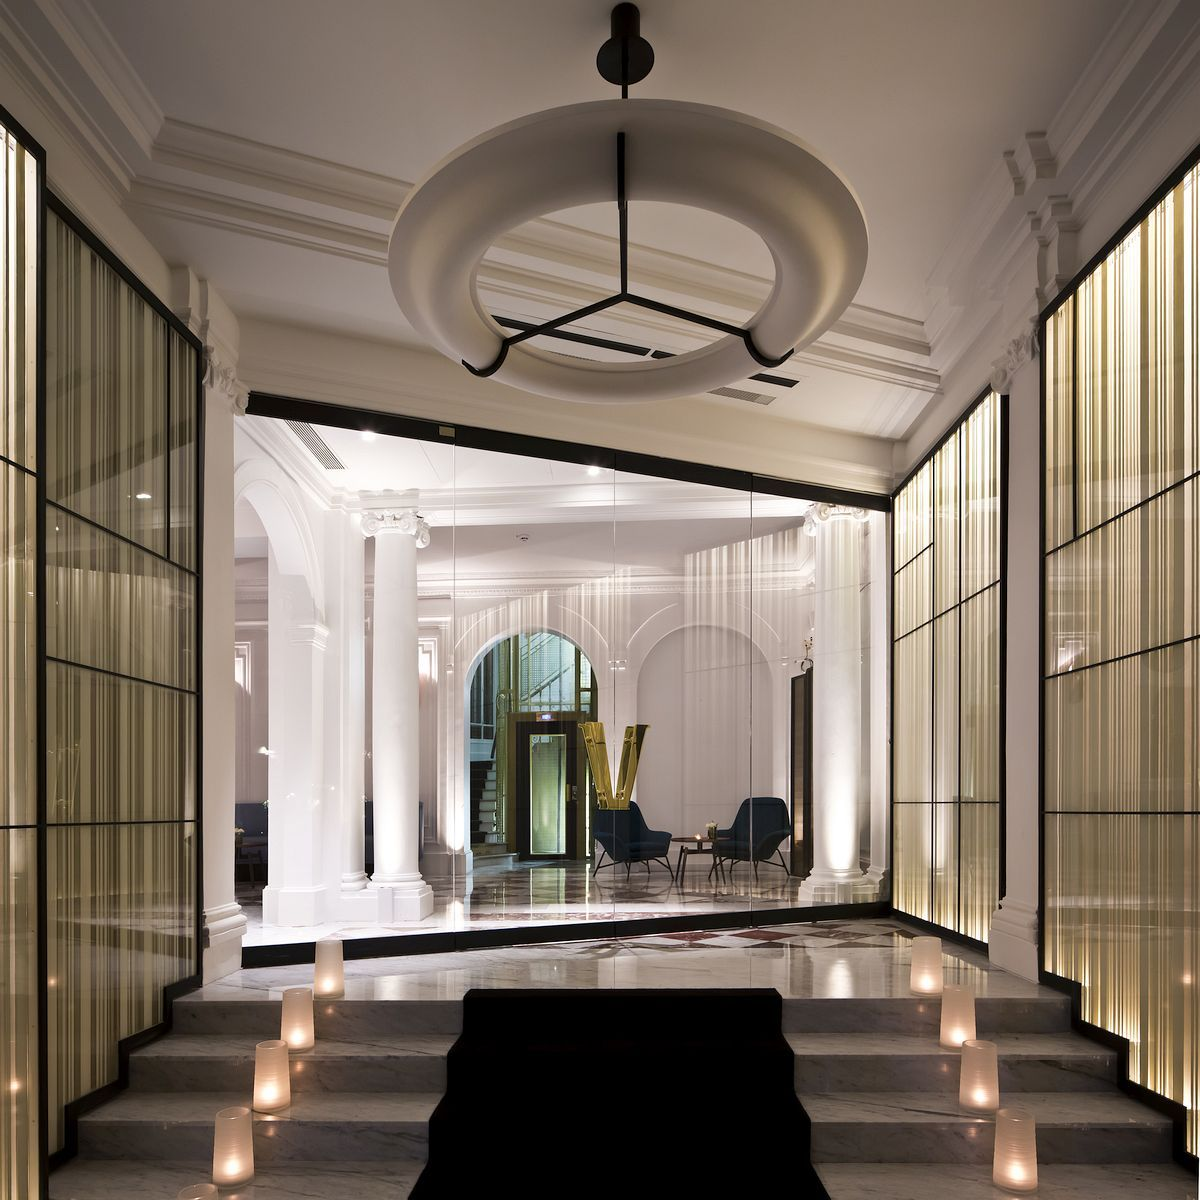 Tutto Interiors A Michigan Interior Design Firm Receives: Hotel Vernet - Paris, France A Stone's Throw From...